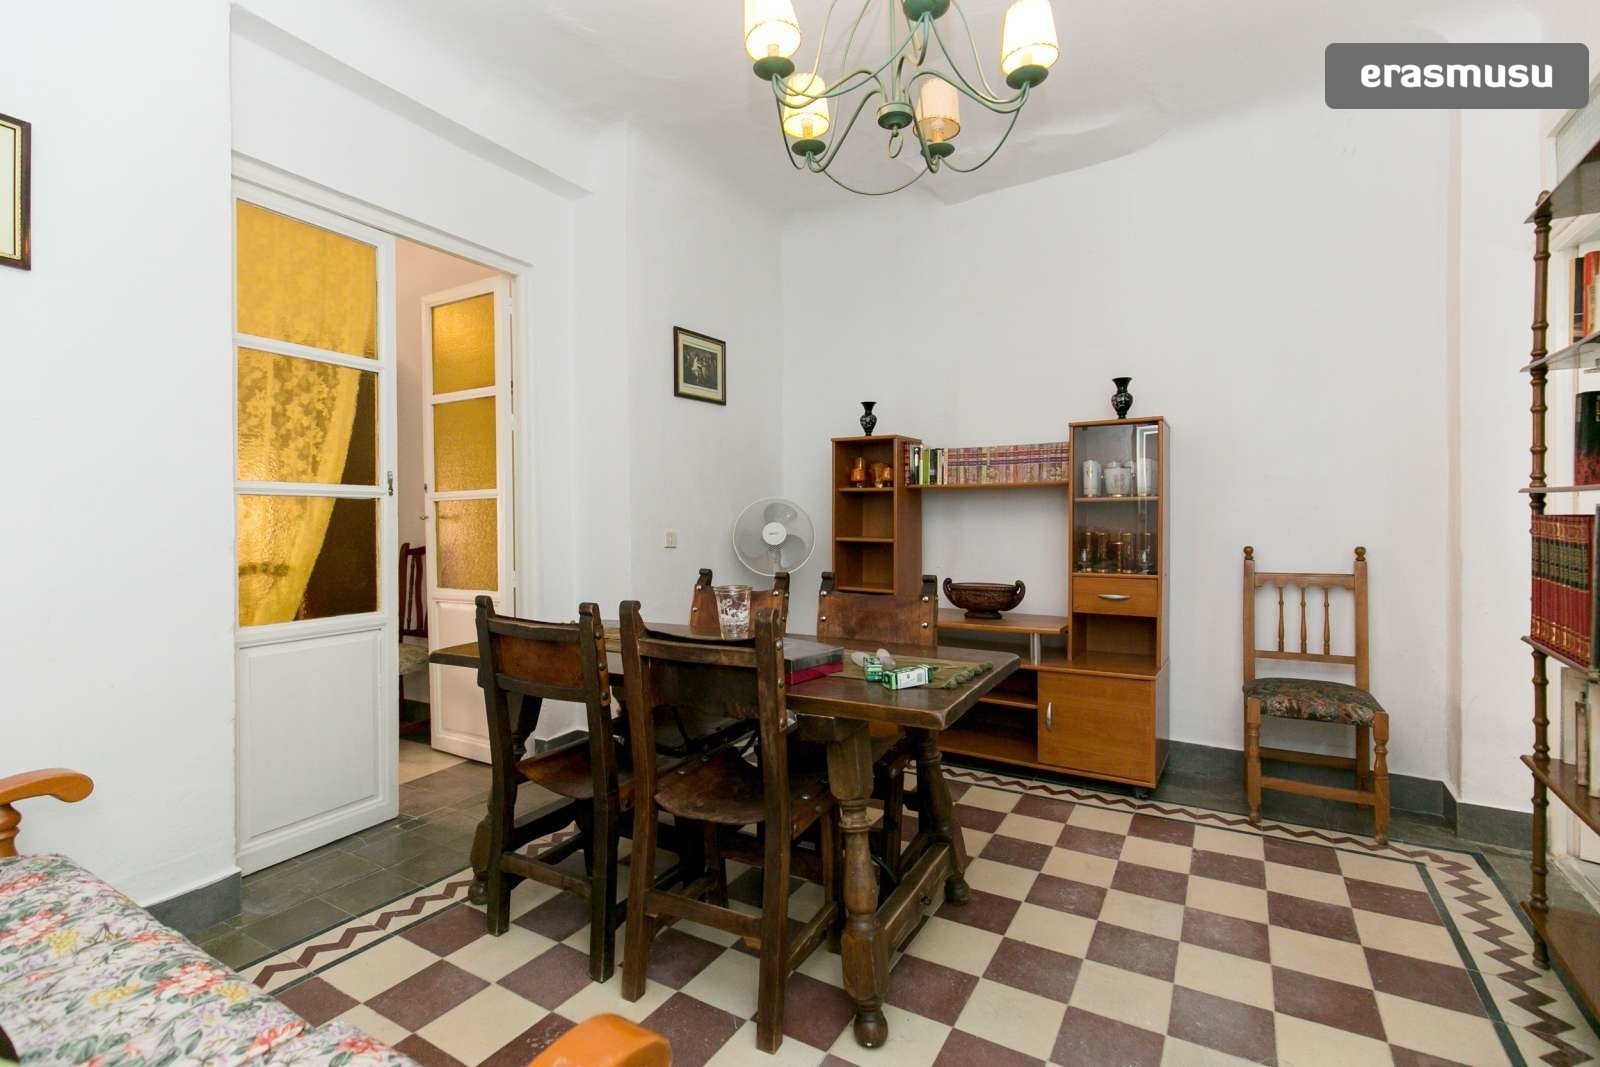 spacious-3-bedroom-apartment-rent-realejo-67b69e87a08049f36bed80